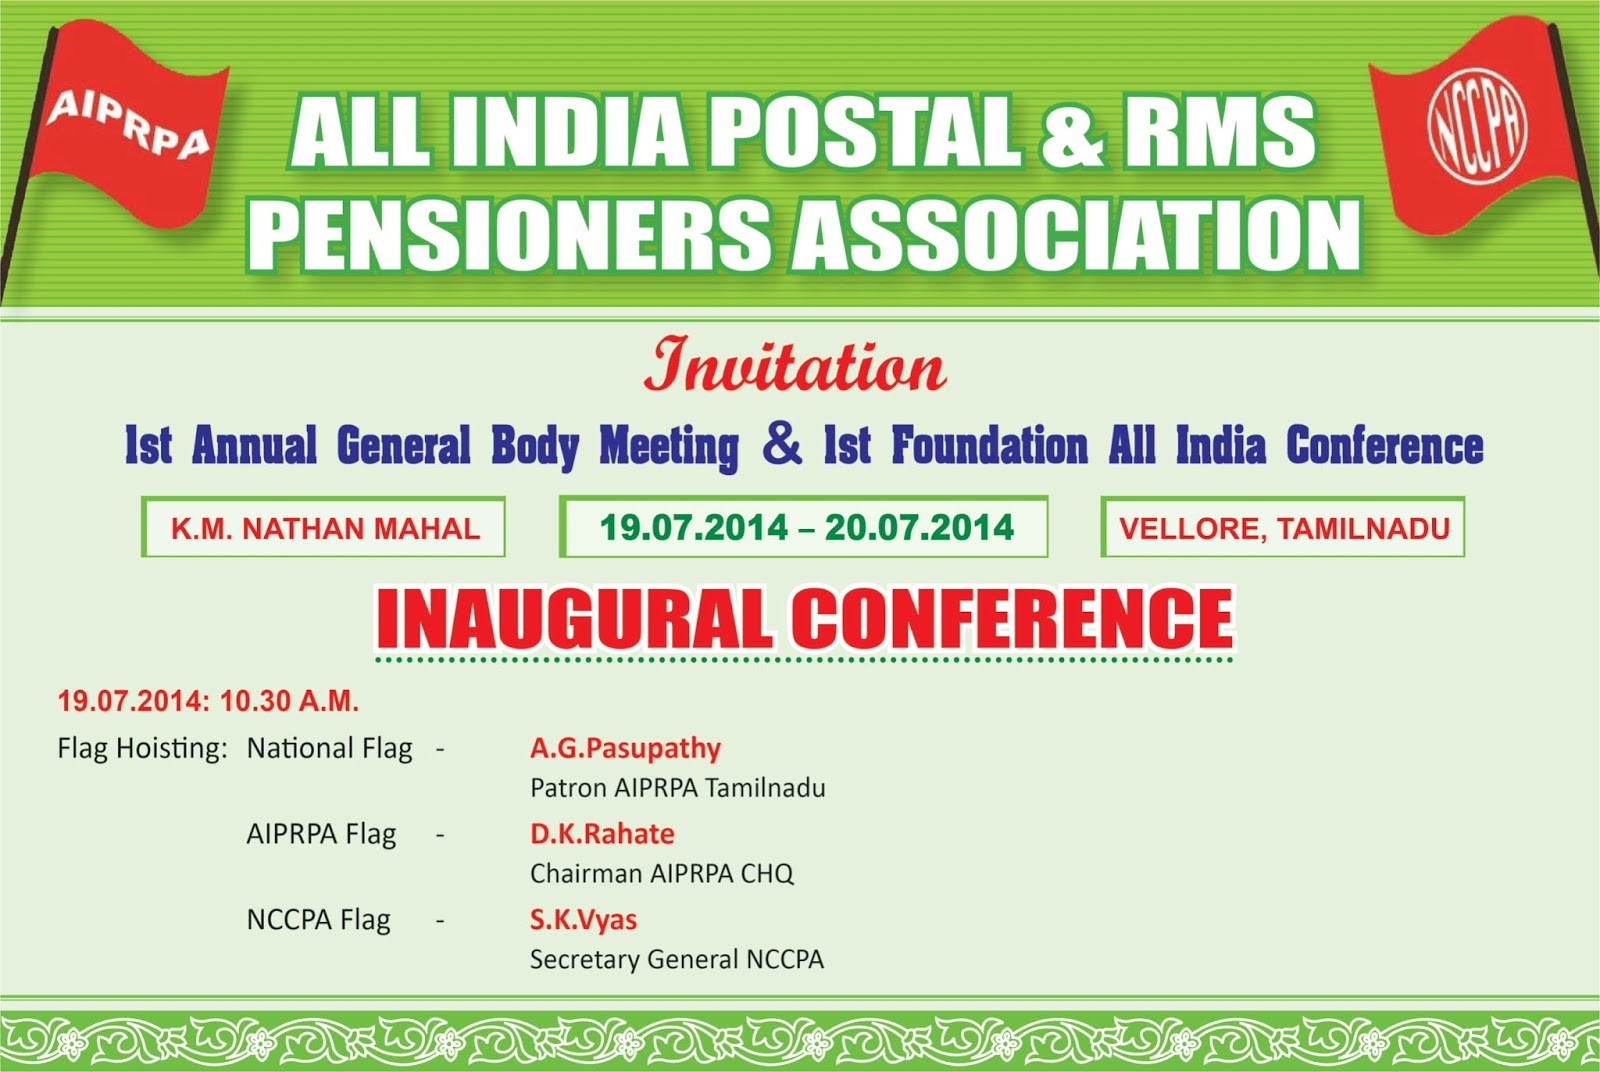 All India Postal RMS Pensioners Association INVITATION TO 1st